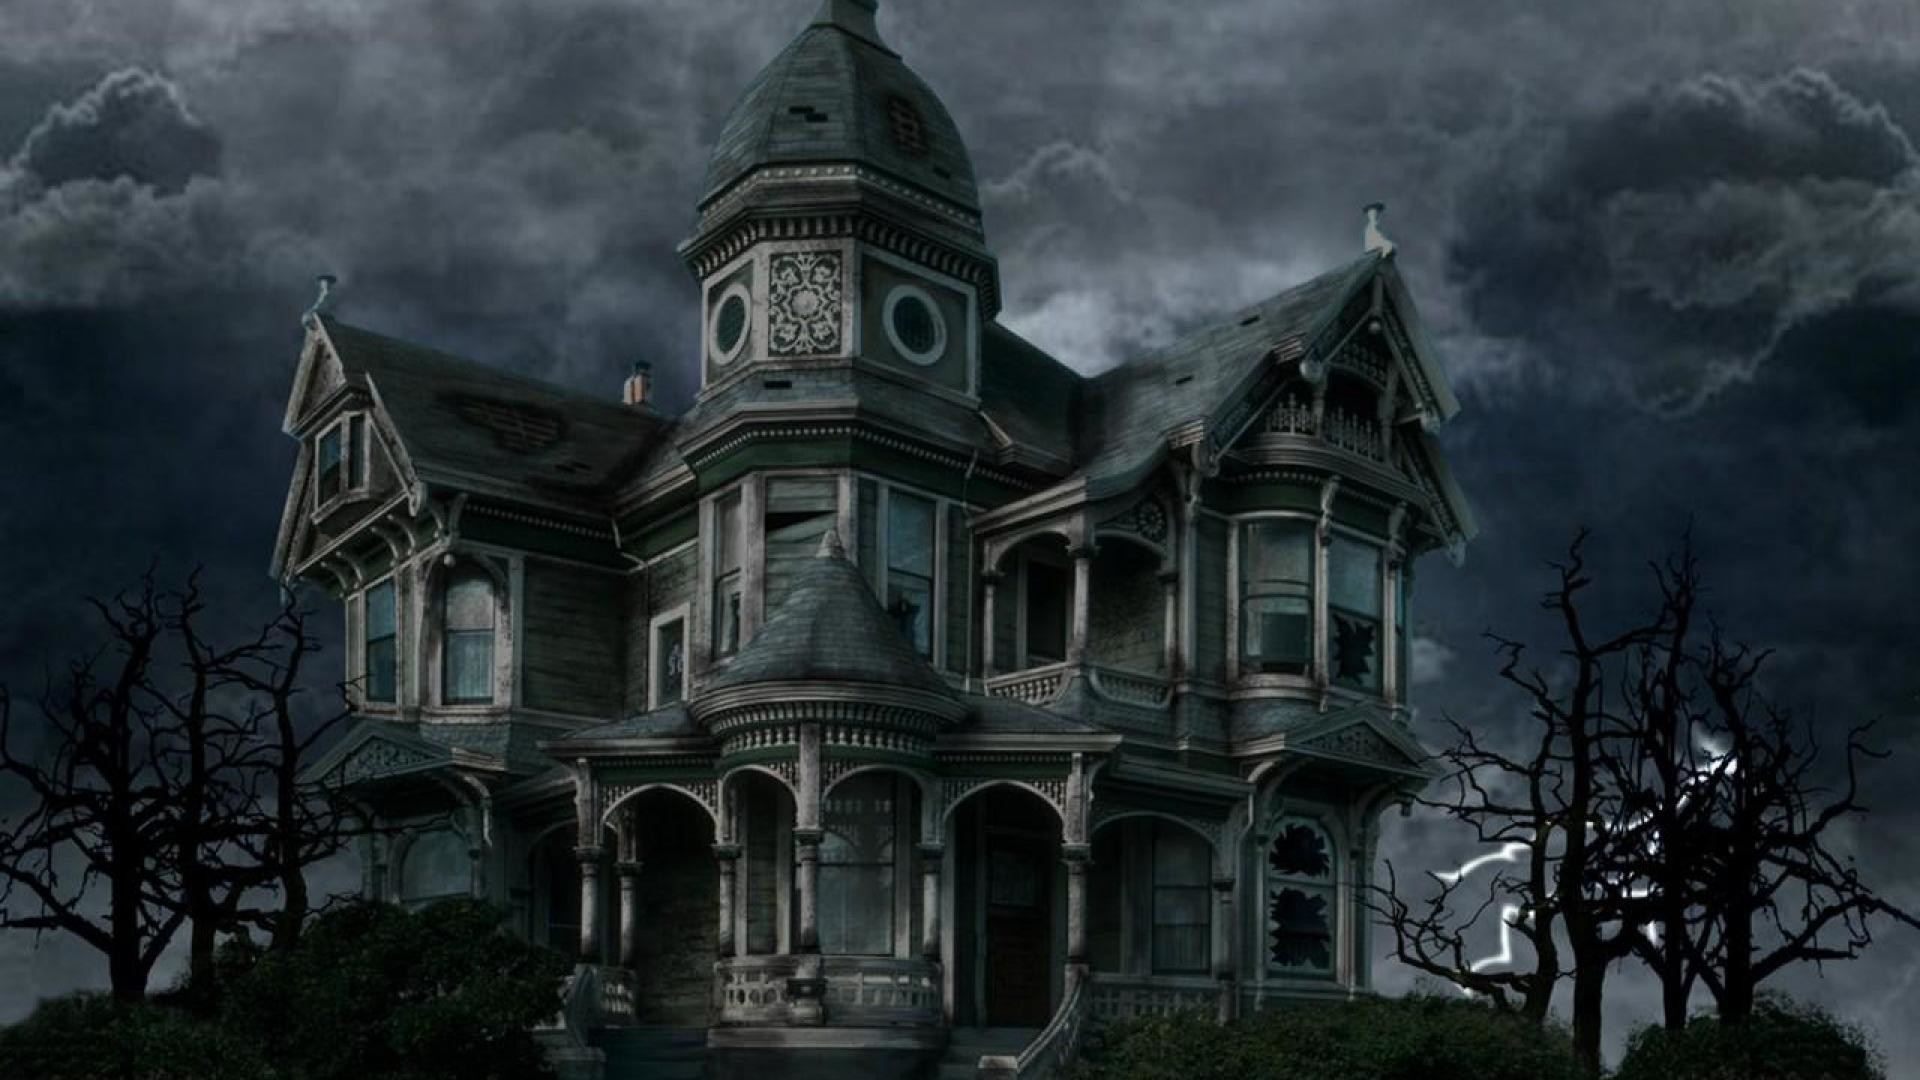 haunted house wallpaper desktop ·①